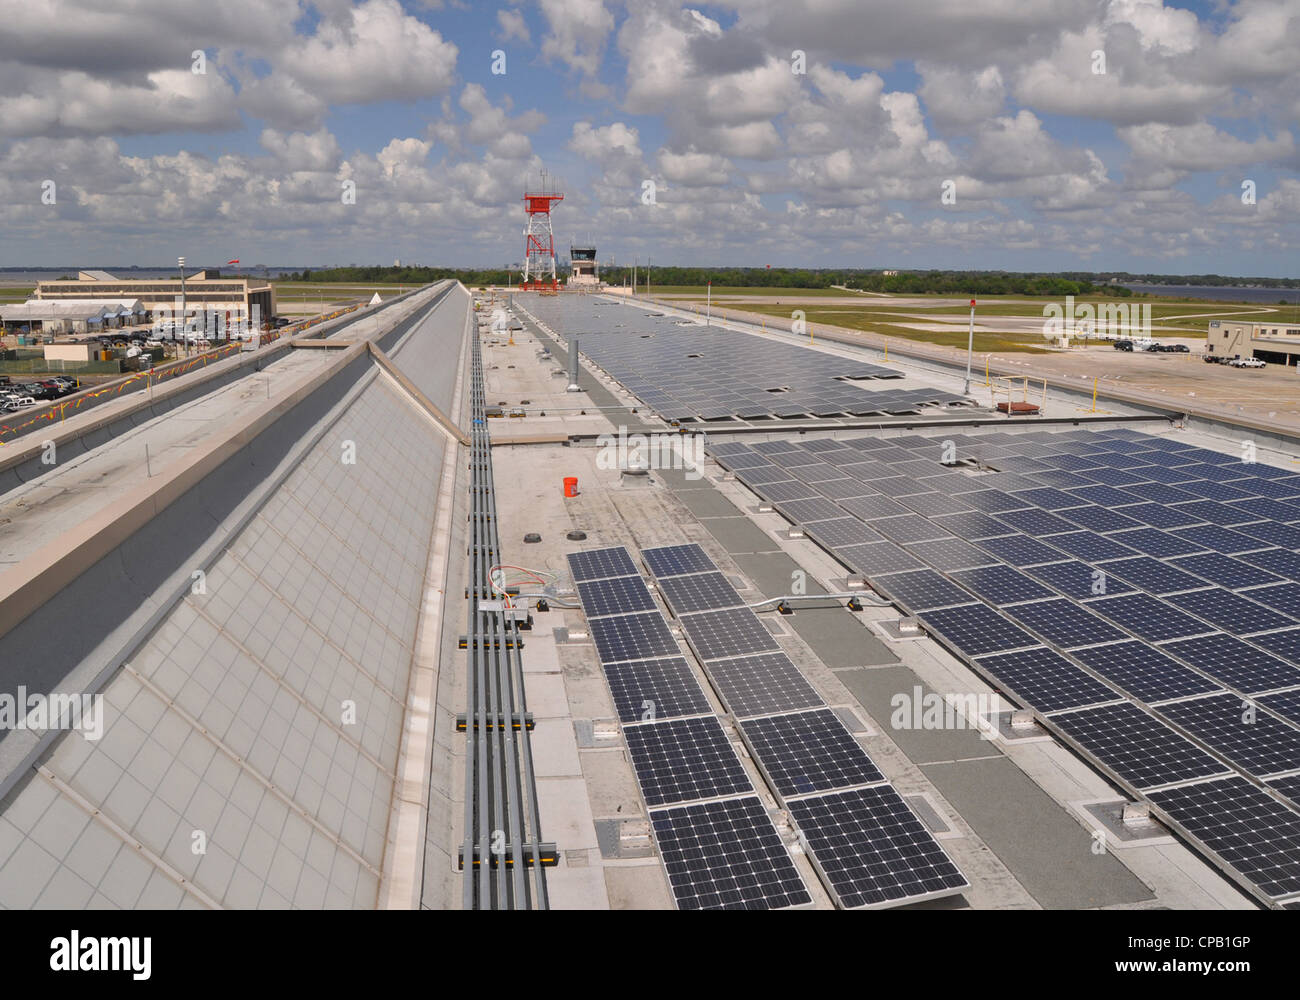 ) Some of the 2,534 solar photovoltaic (PV) panels installed on the roof of Naval Air Station Jacksonville's - Stock Image